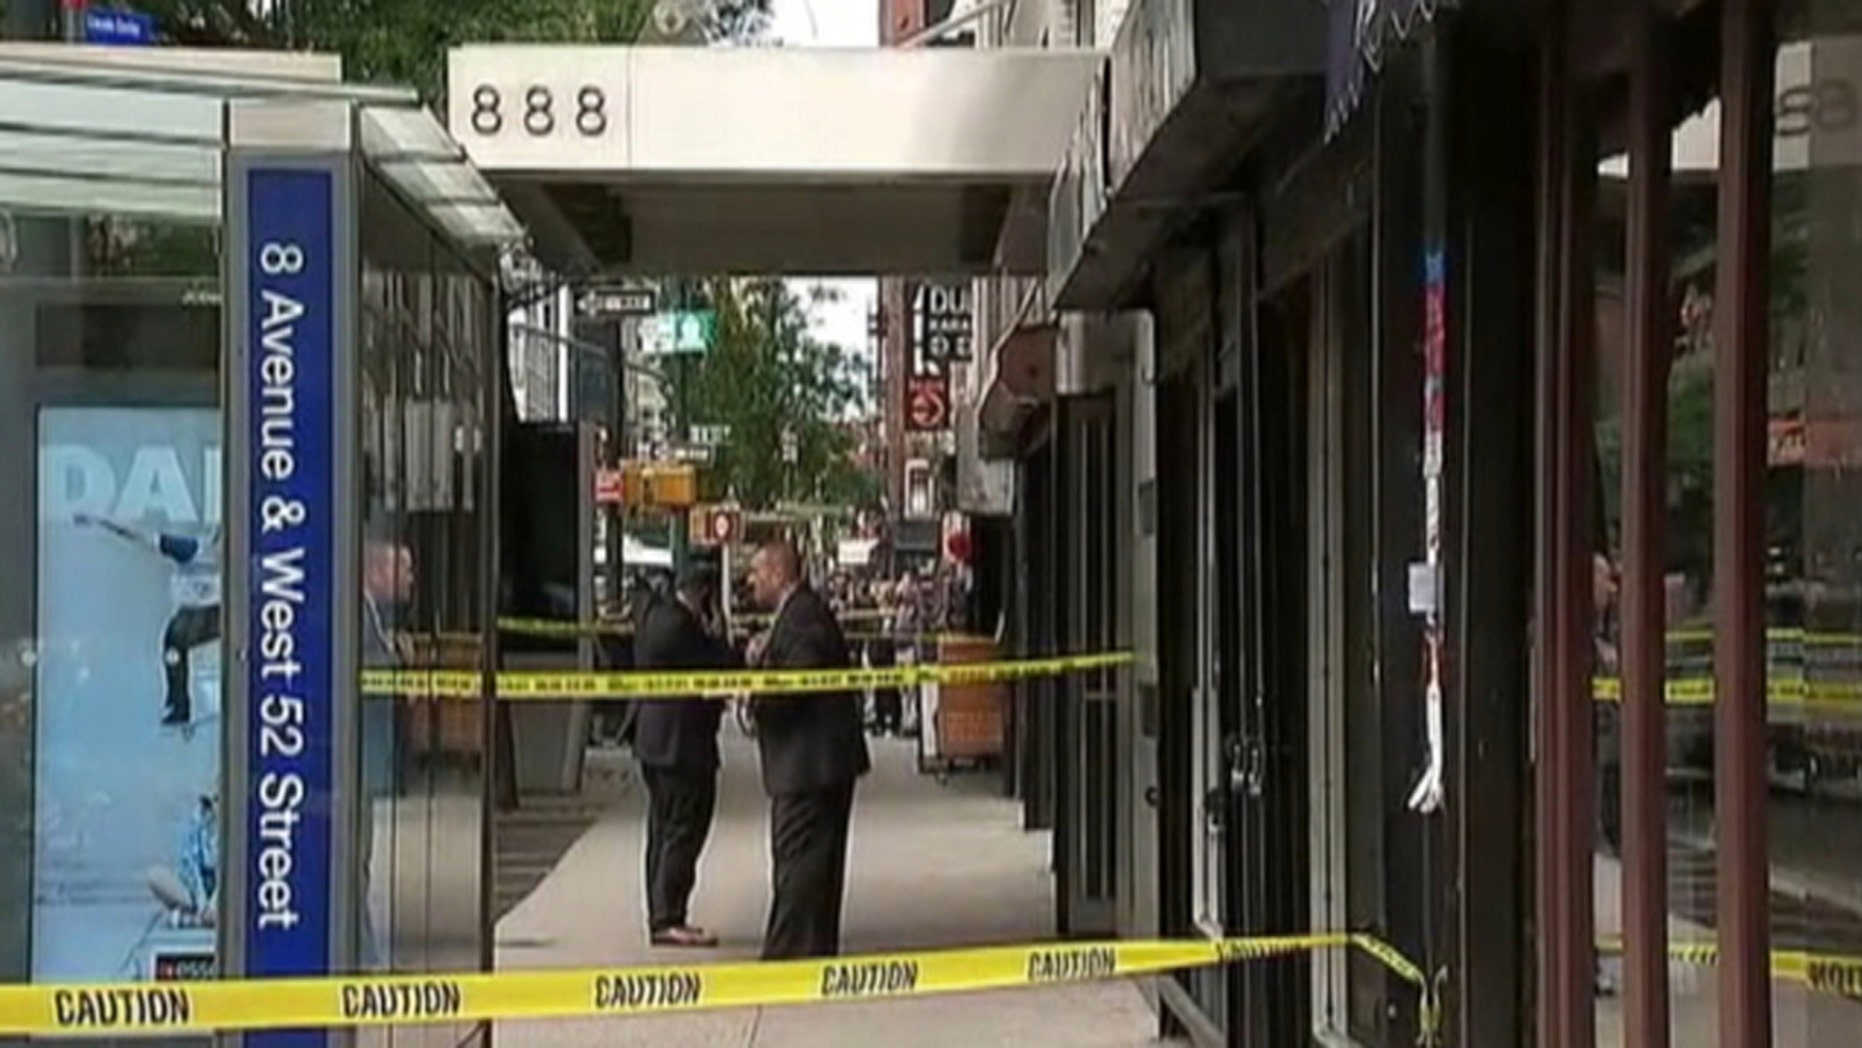 Four teenagers were stabbed in New York City's Theater District during a fight among students outside a school, police said.